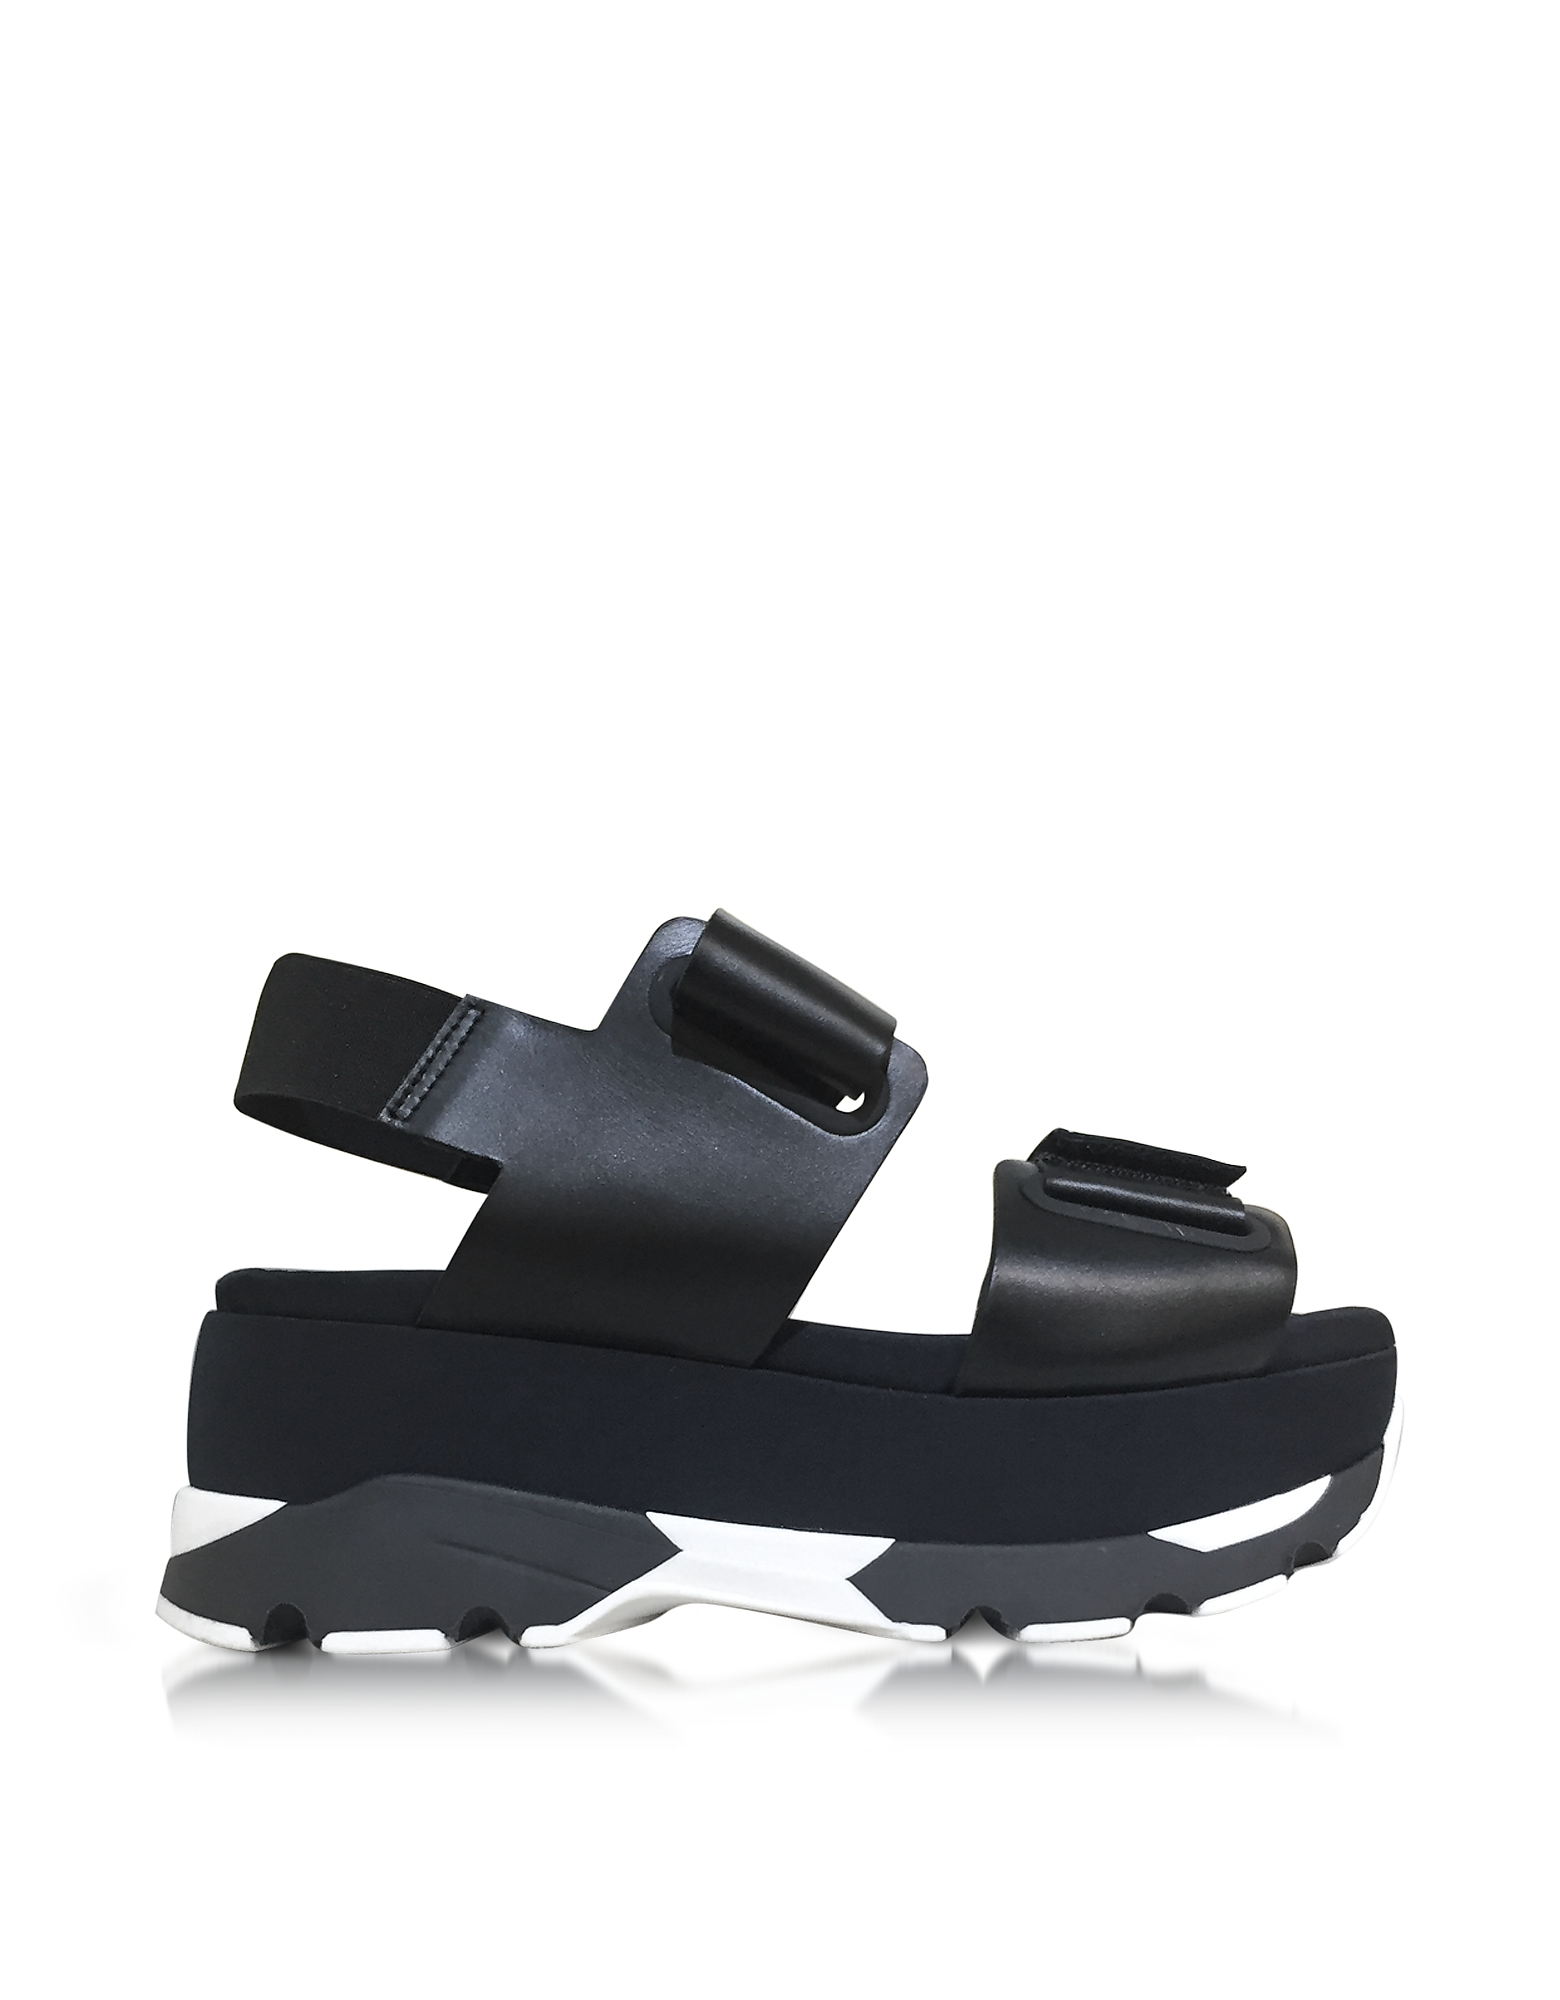 Marni Shoes, Black Leather Wedge Sandals